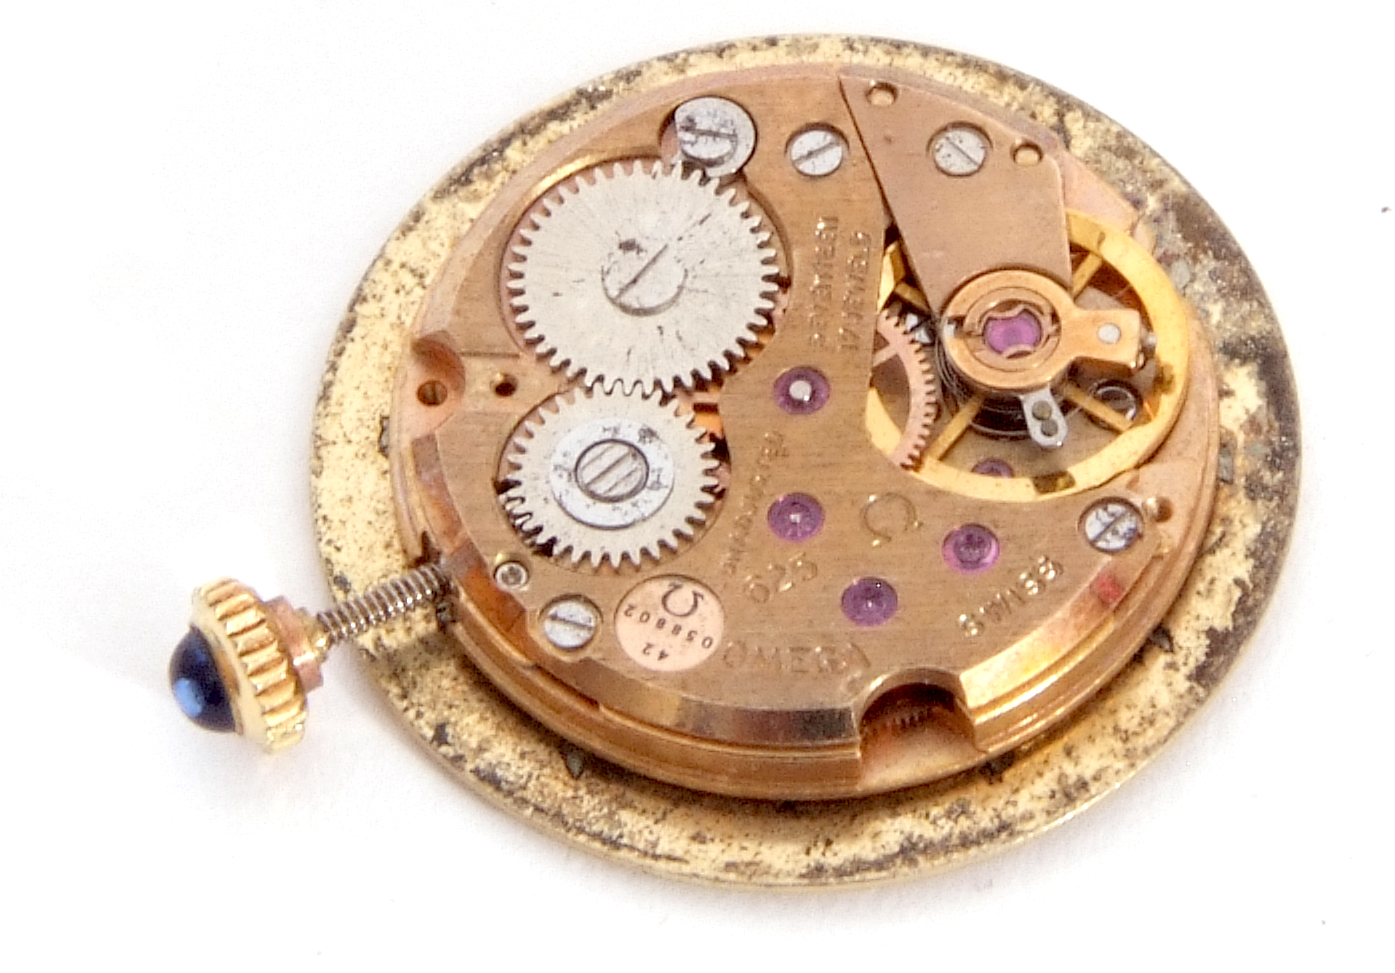 Mixed Lot: ladies Omega De Ville movement, signed 17-jewel movement, 42-05 8802, the winder - Image 6 of 8